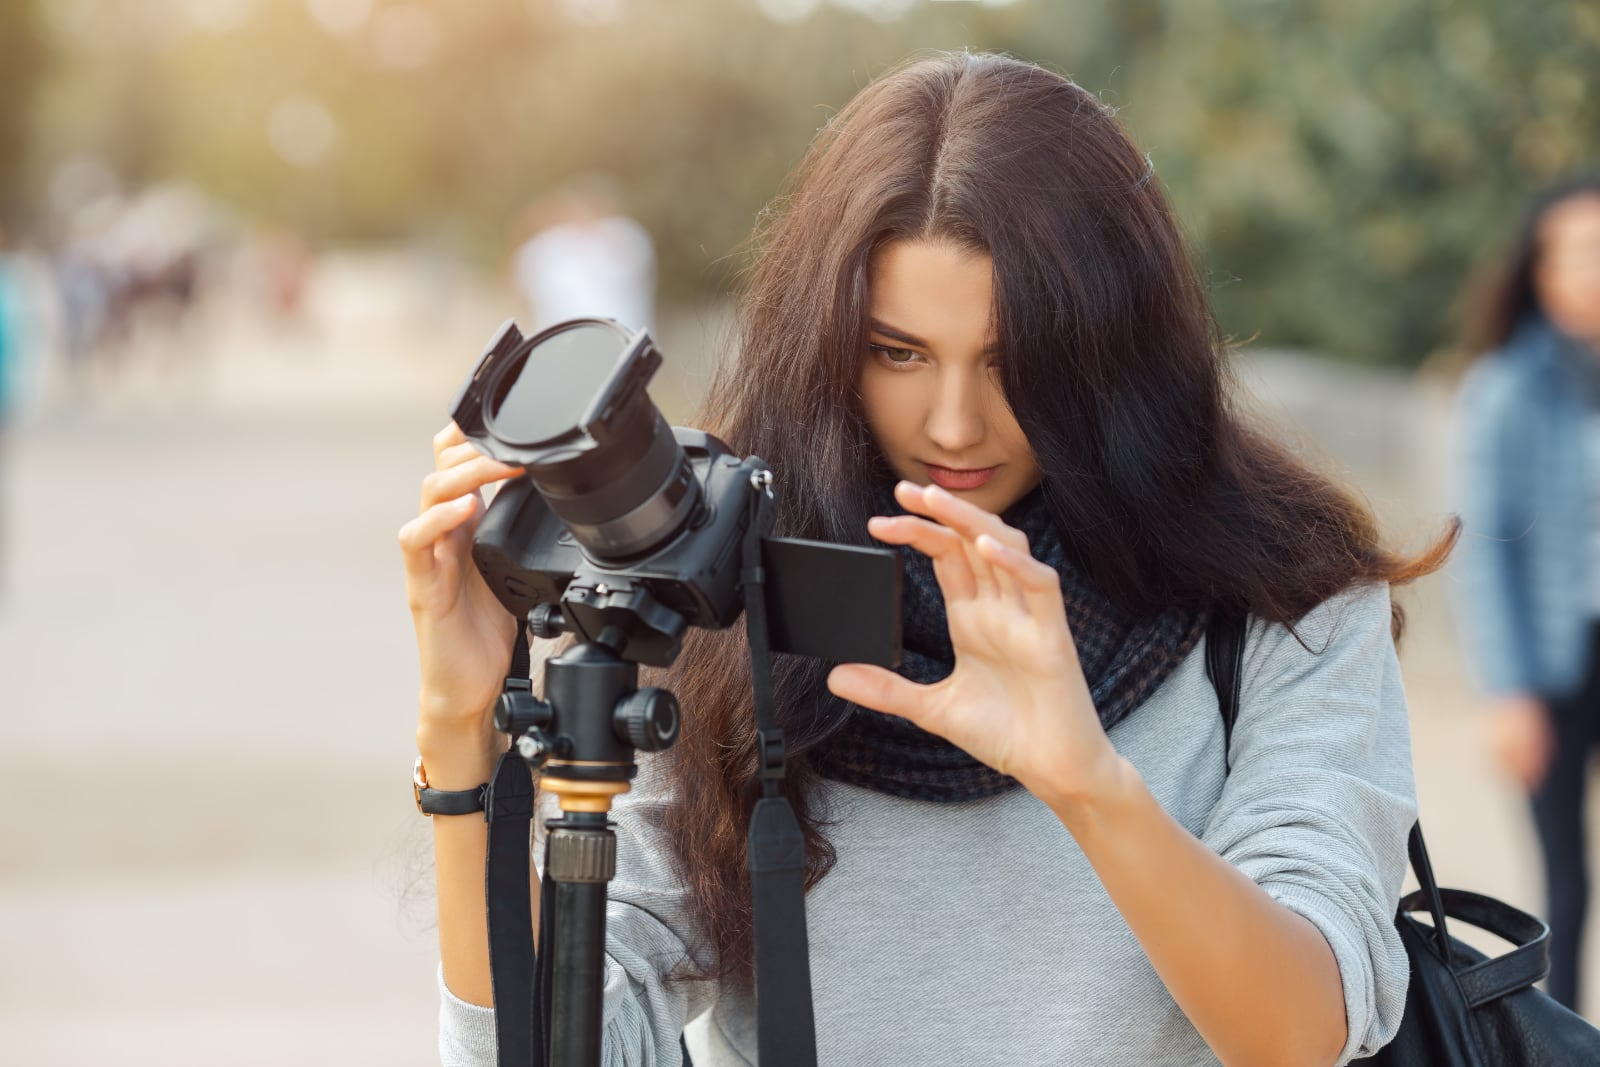 woman-professional-photographer-taking-landscape-images-with-dslr-camera-tripod-outdoors